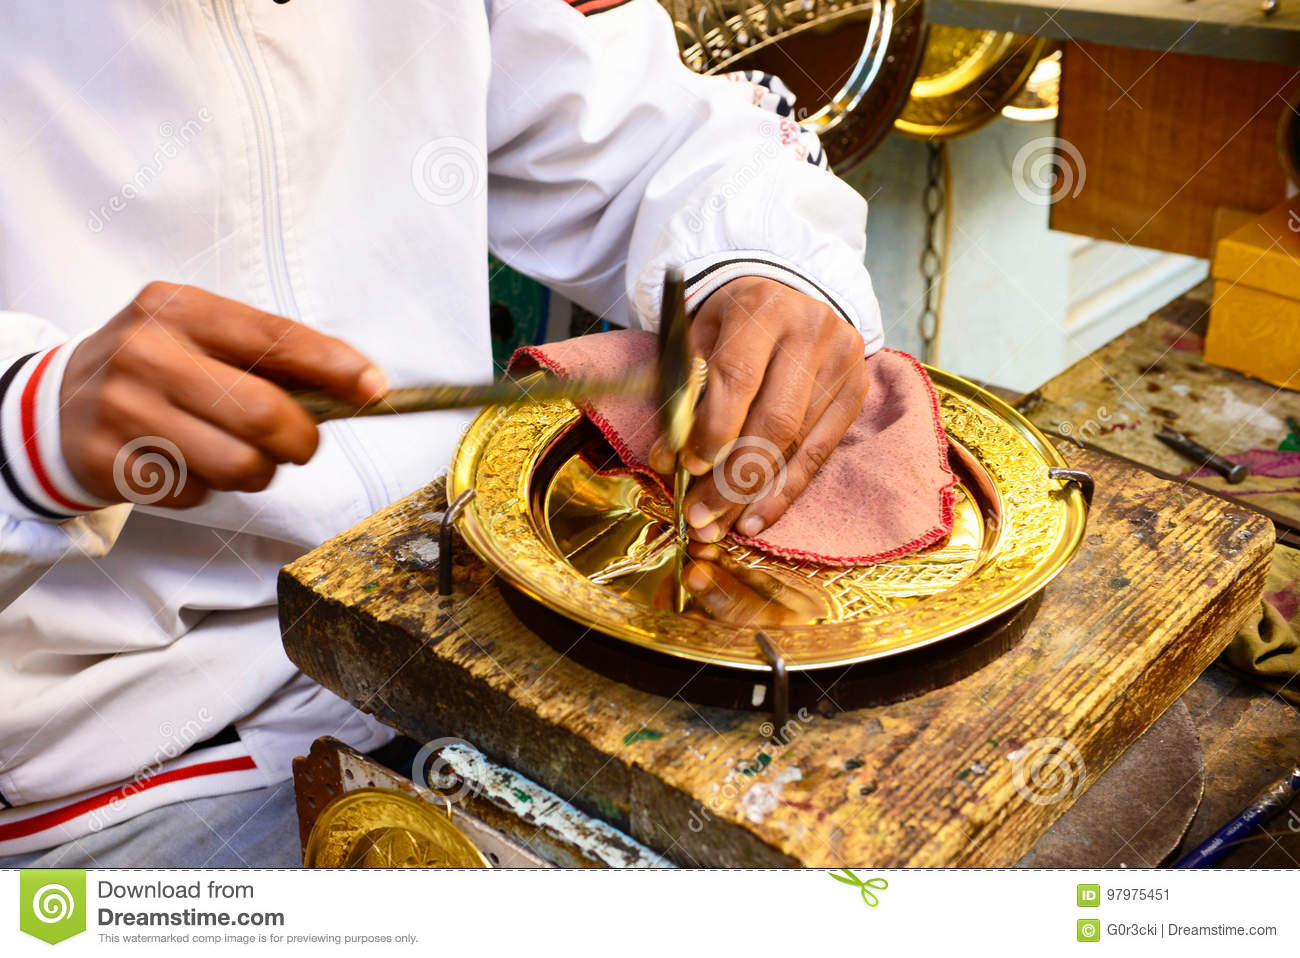 Tunis Medina Artisan, Golden Metalworking, Tunisia